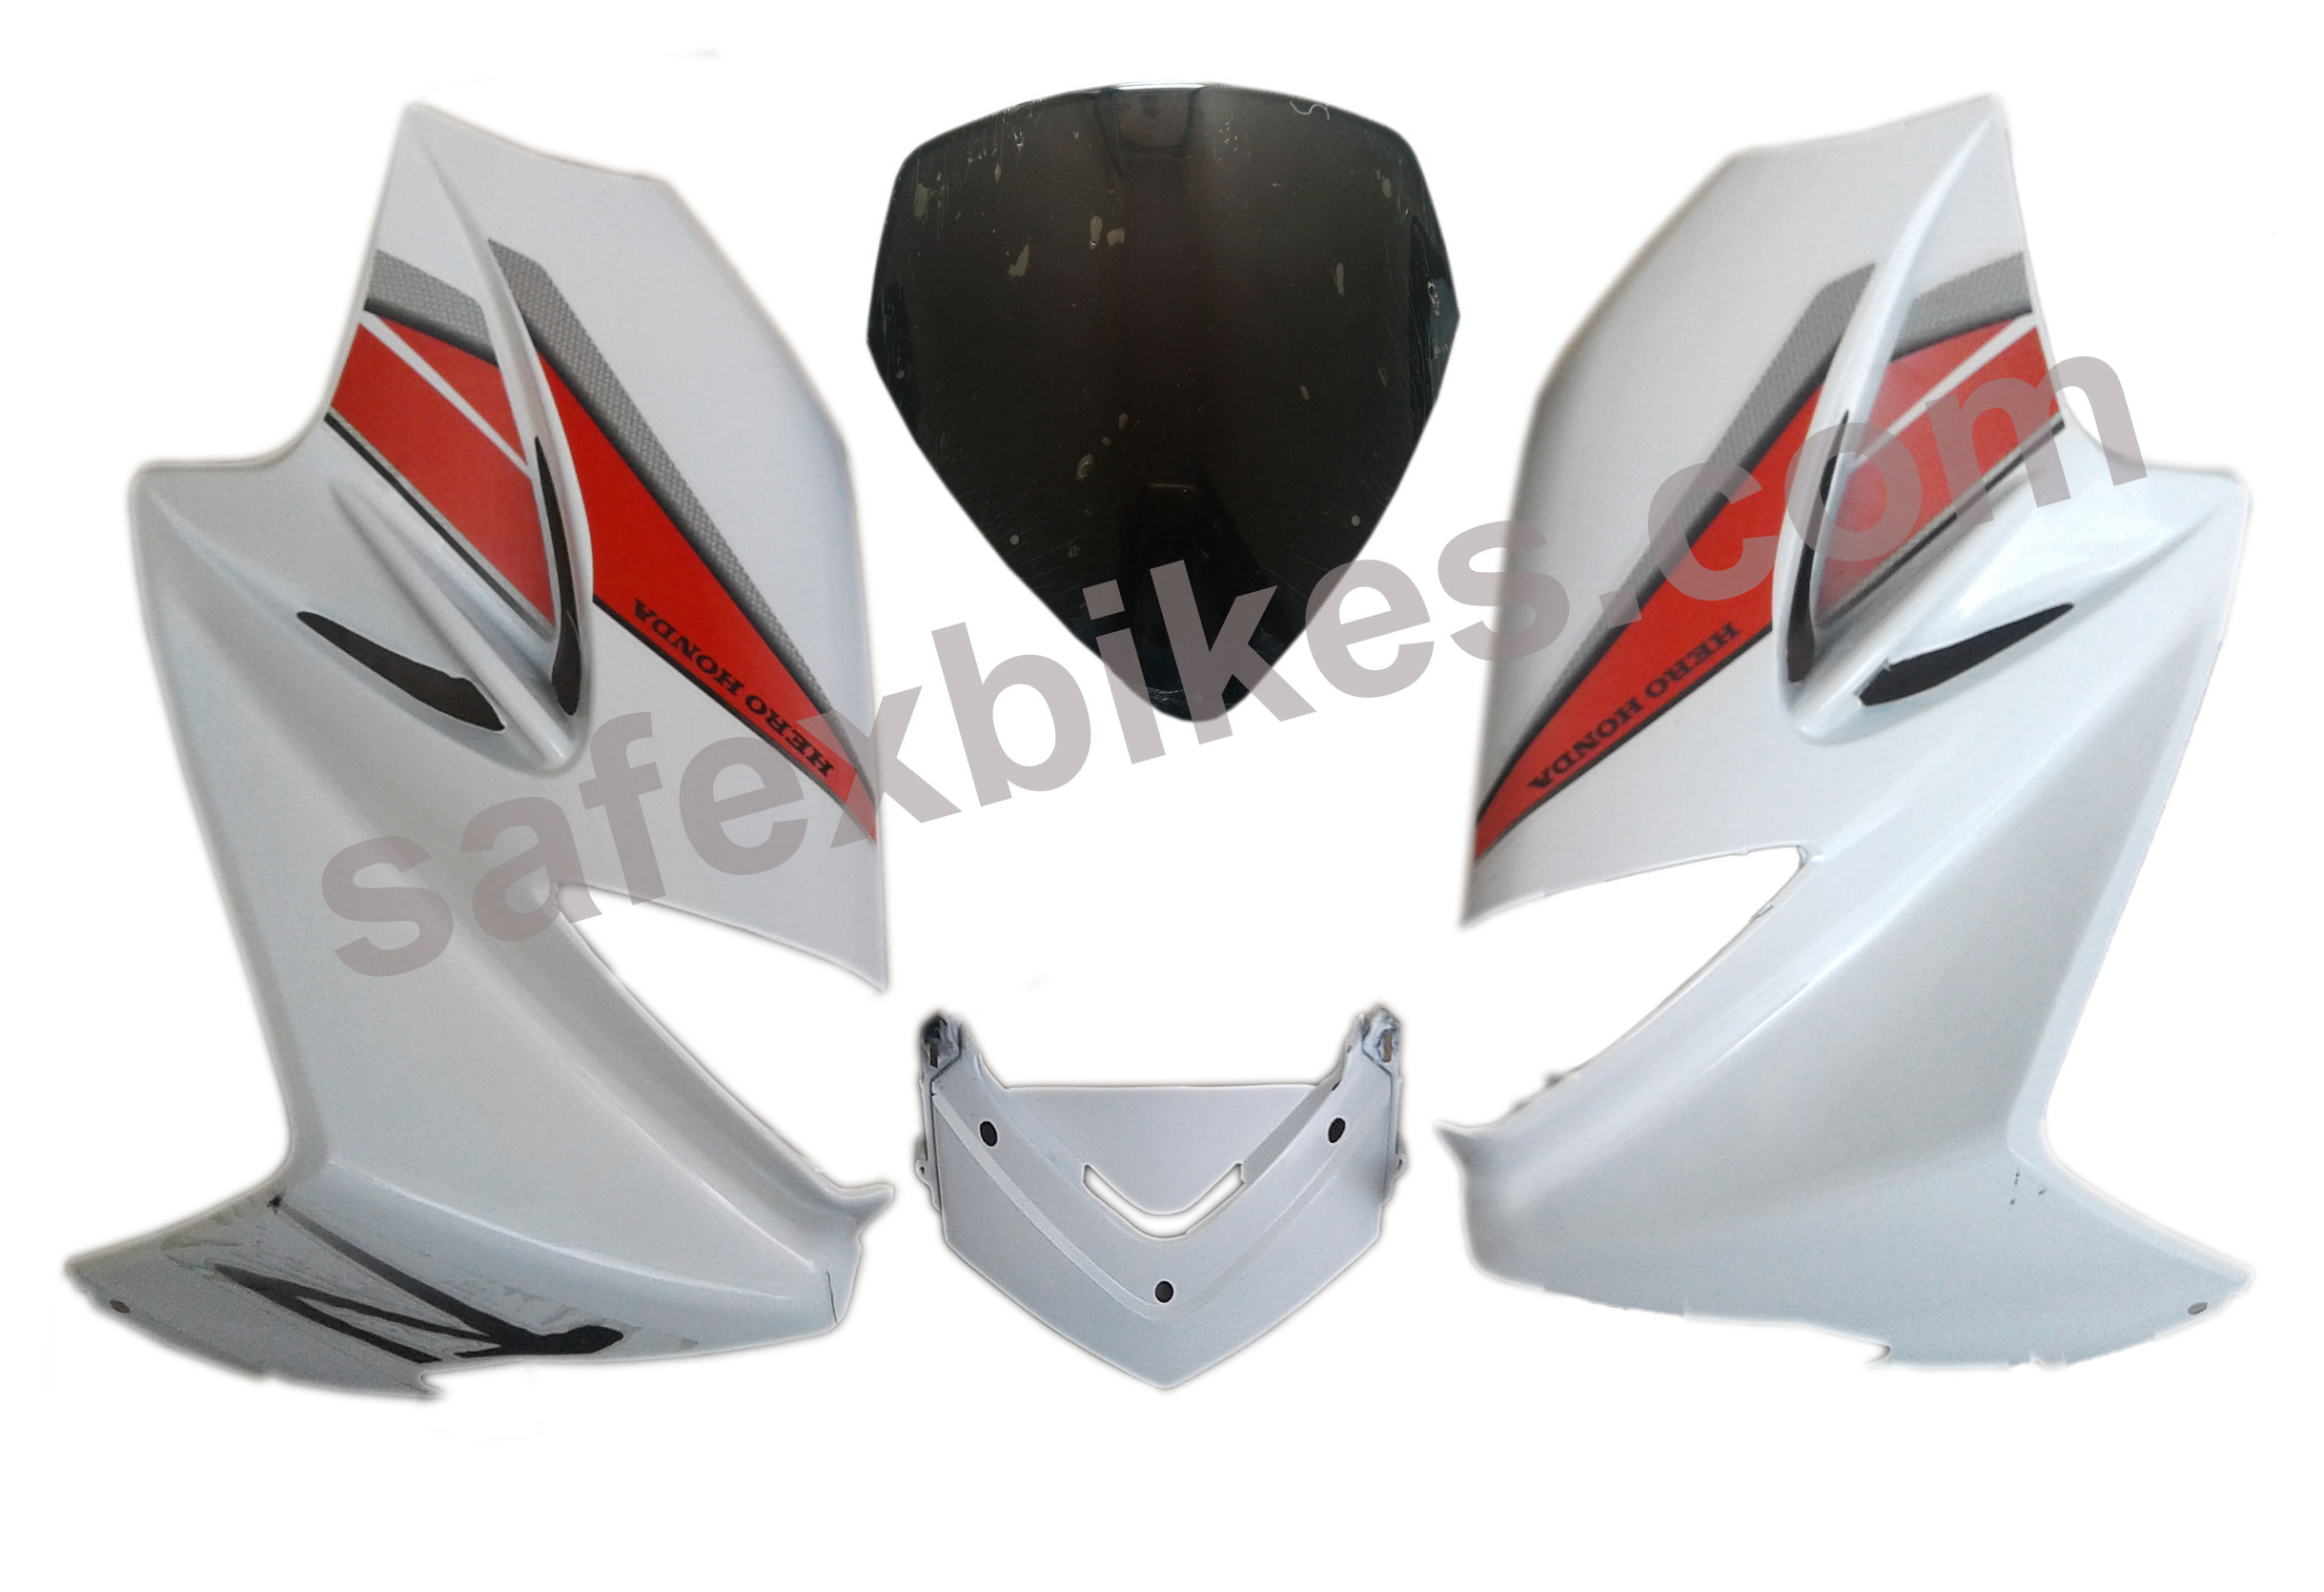 Front Fairing Visor Karizma R 2014 Set Of 4 With Oet Glass Zadon Hero Honda Motorcycle Parts For Motocorp V2